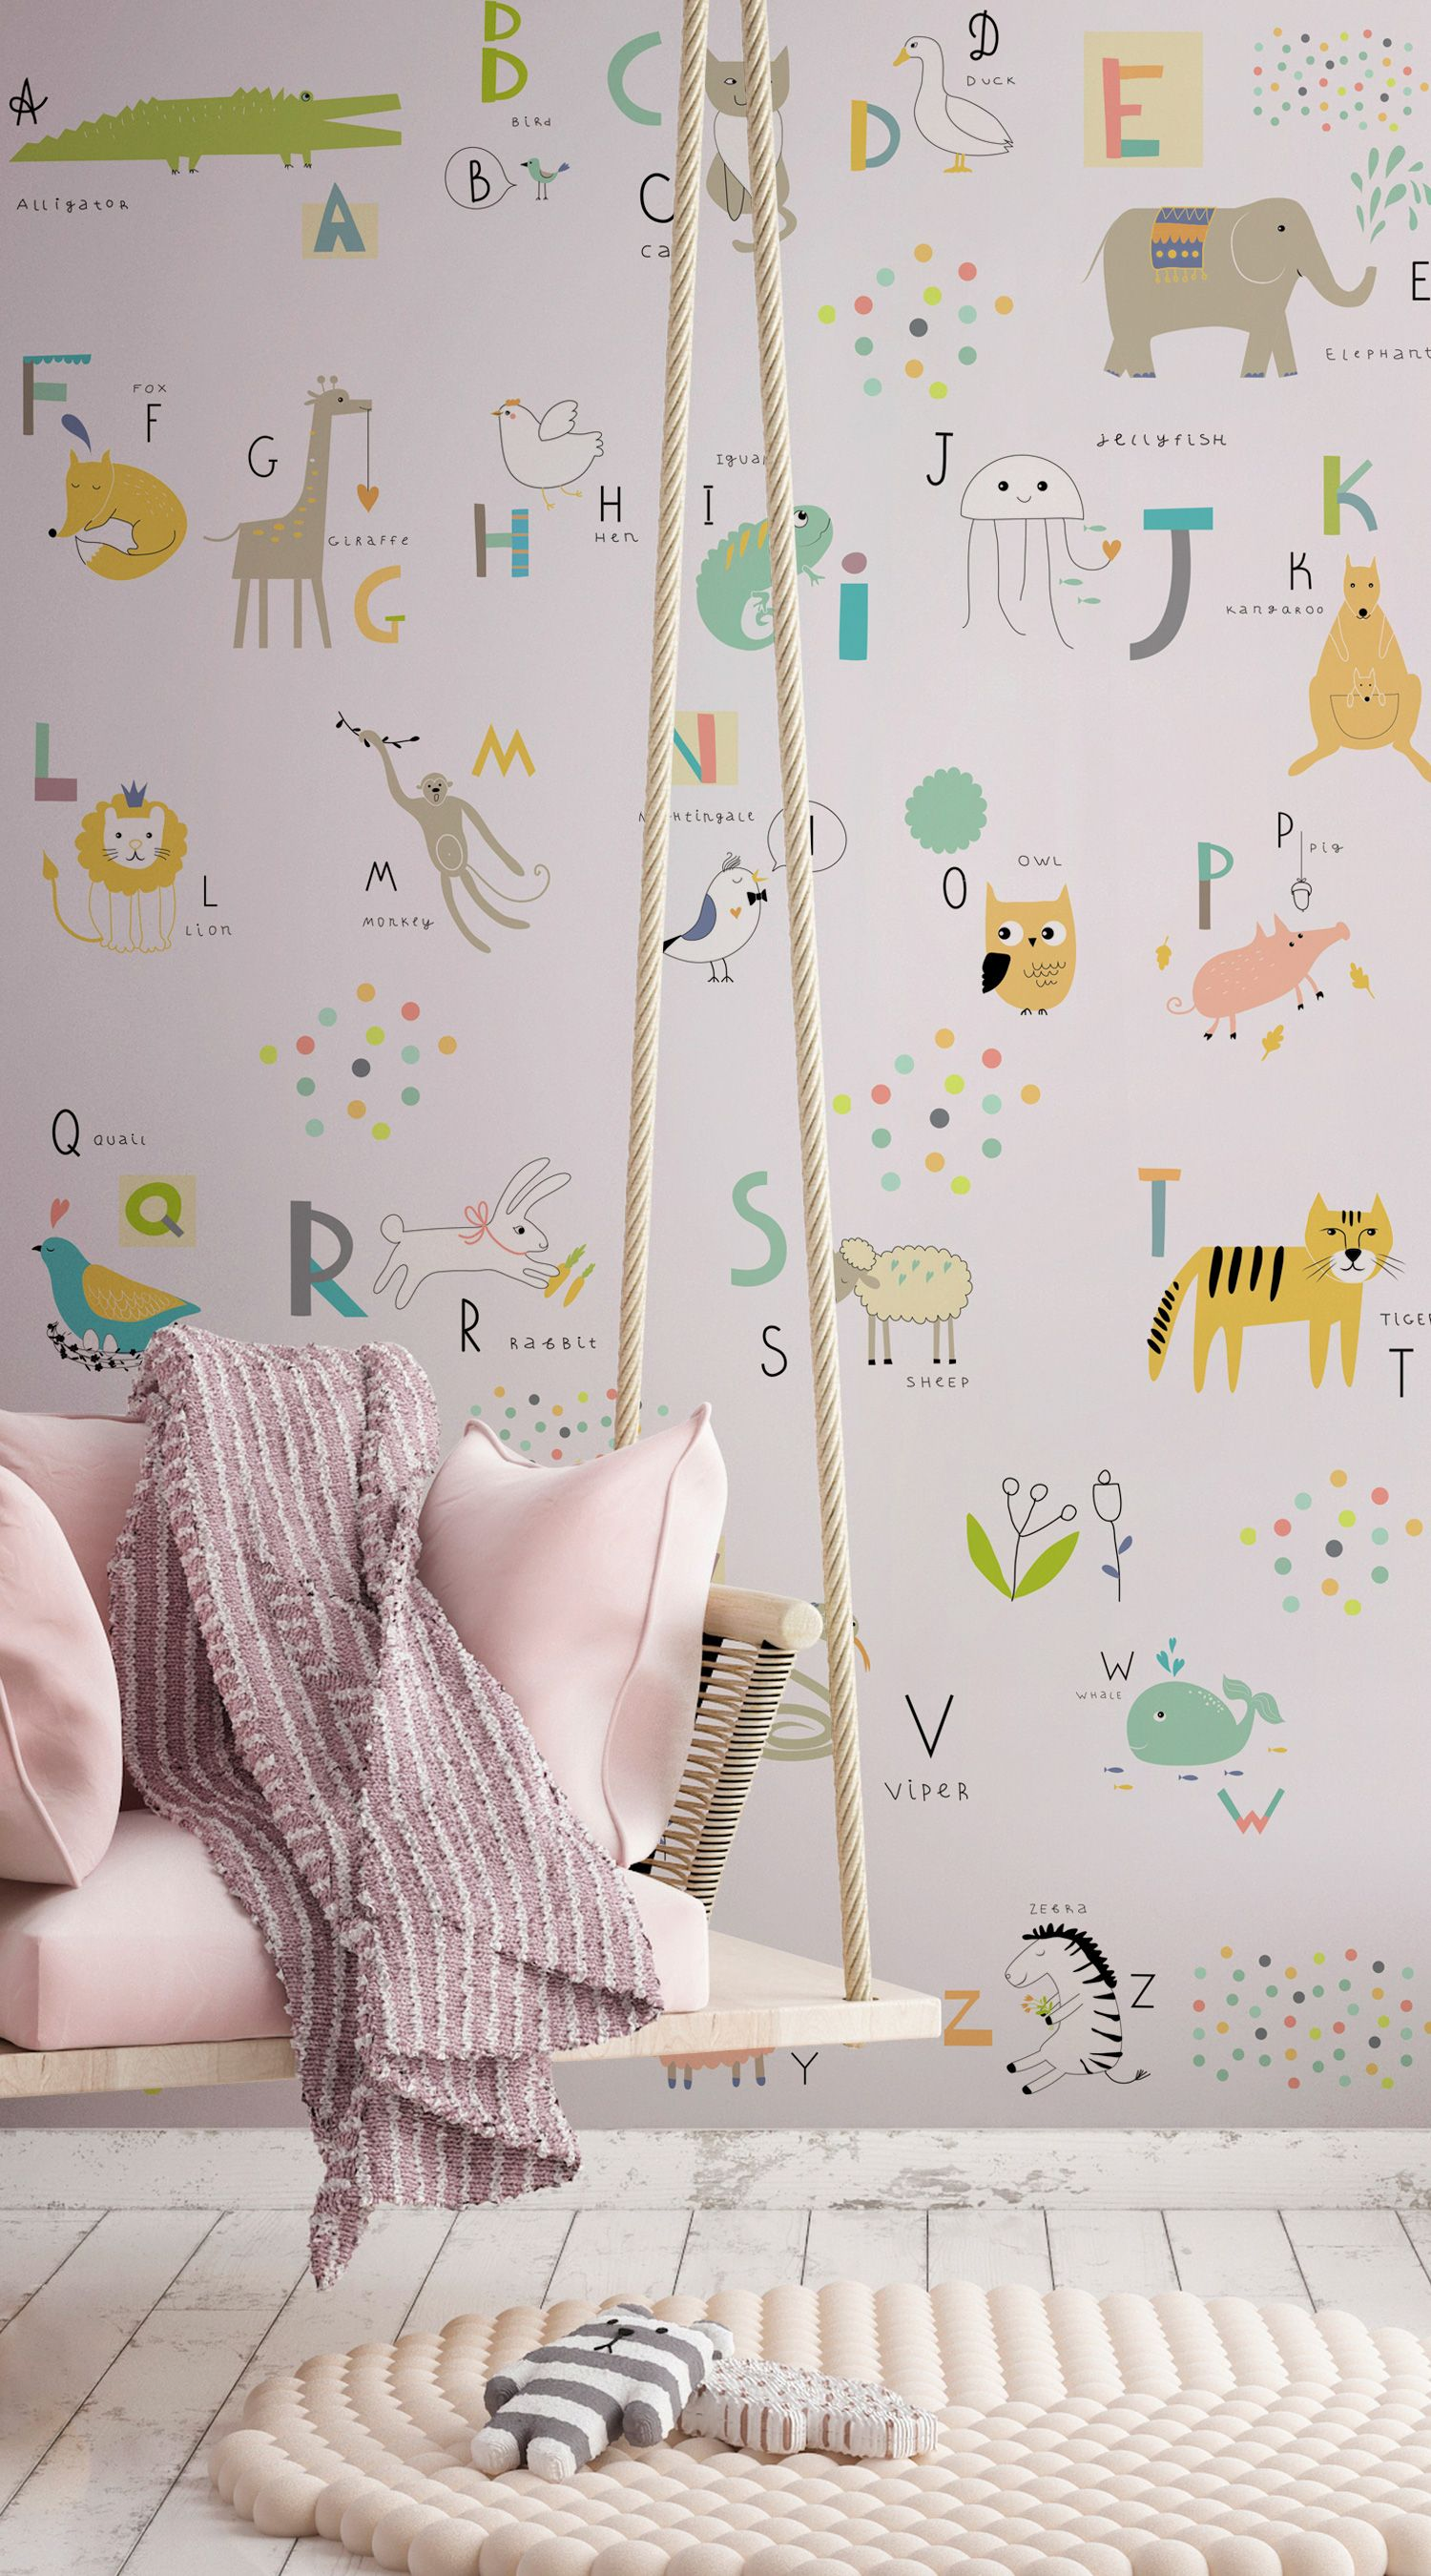 Educational Wallpapers; The Perfect Ideas for your Kid's Bedroom is part of Kids bedroom Murals - By their very nature, children are imaginative, creative and full of life, so it only makes sense that their spaces should be filled with vibrant energy